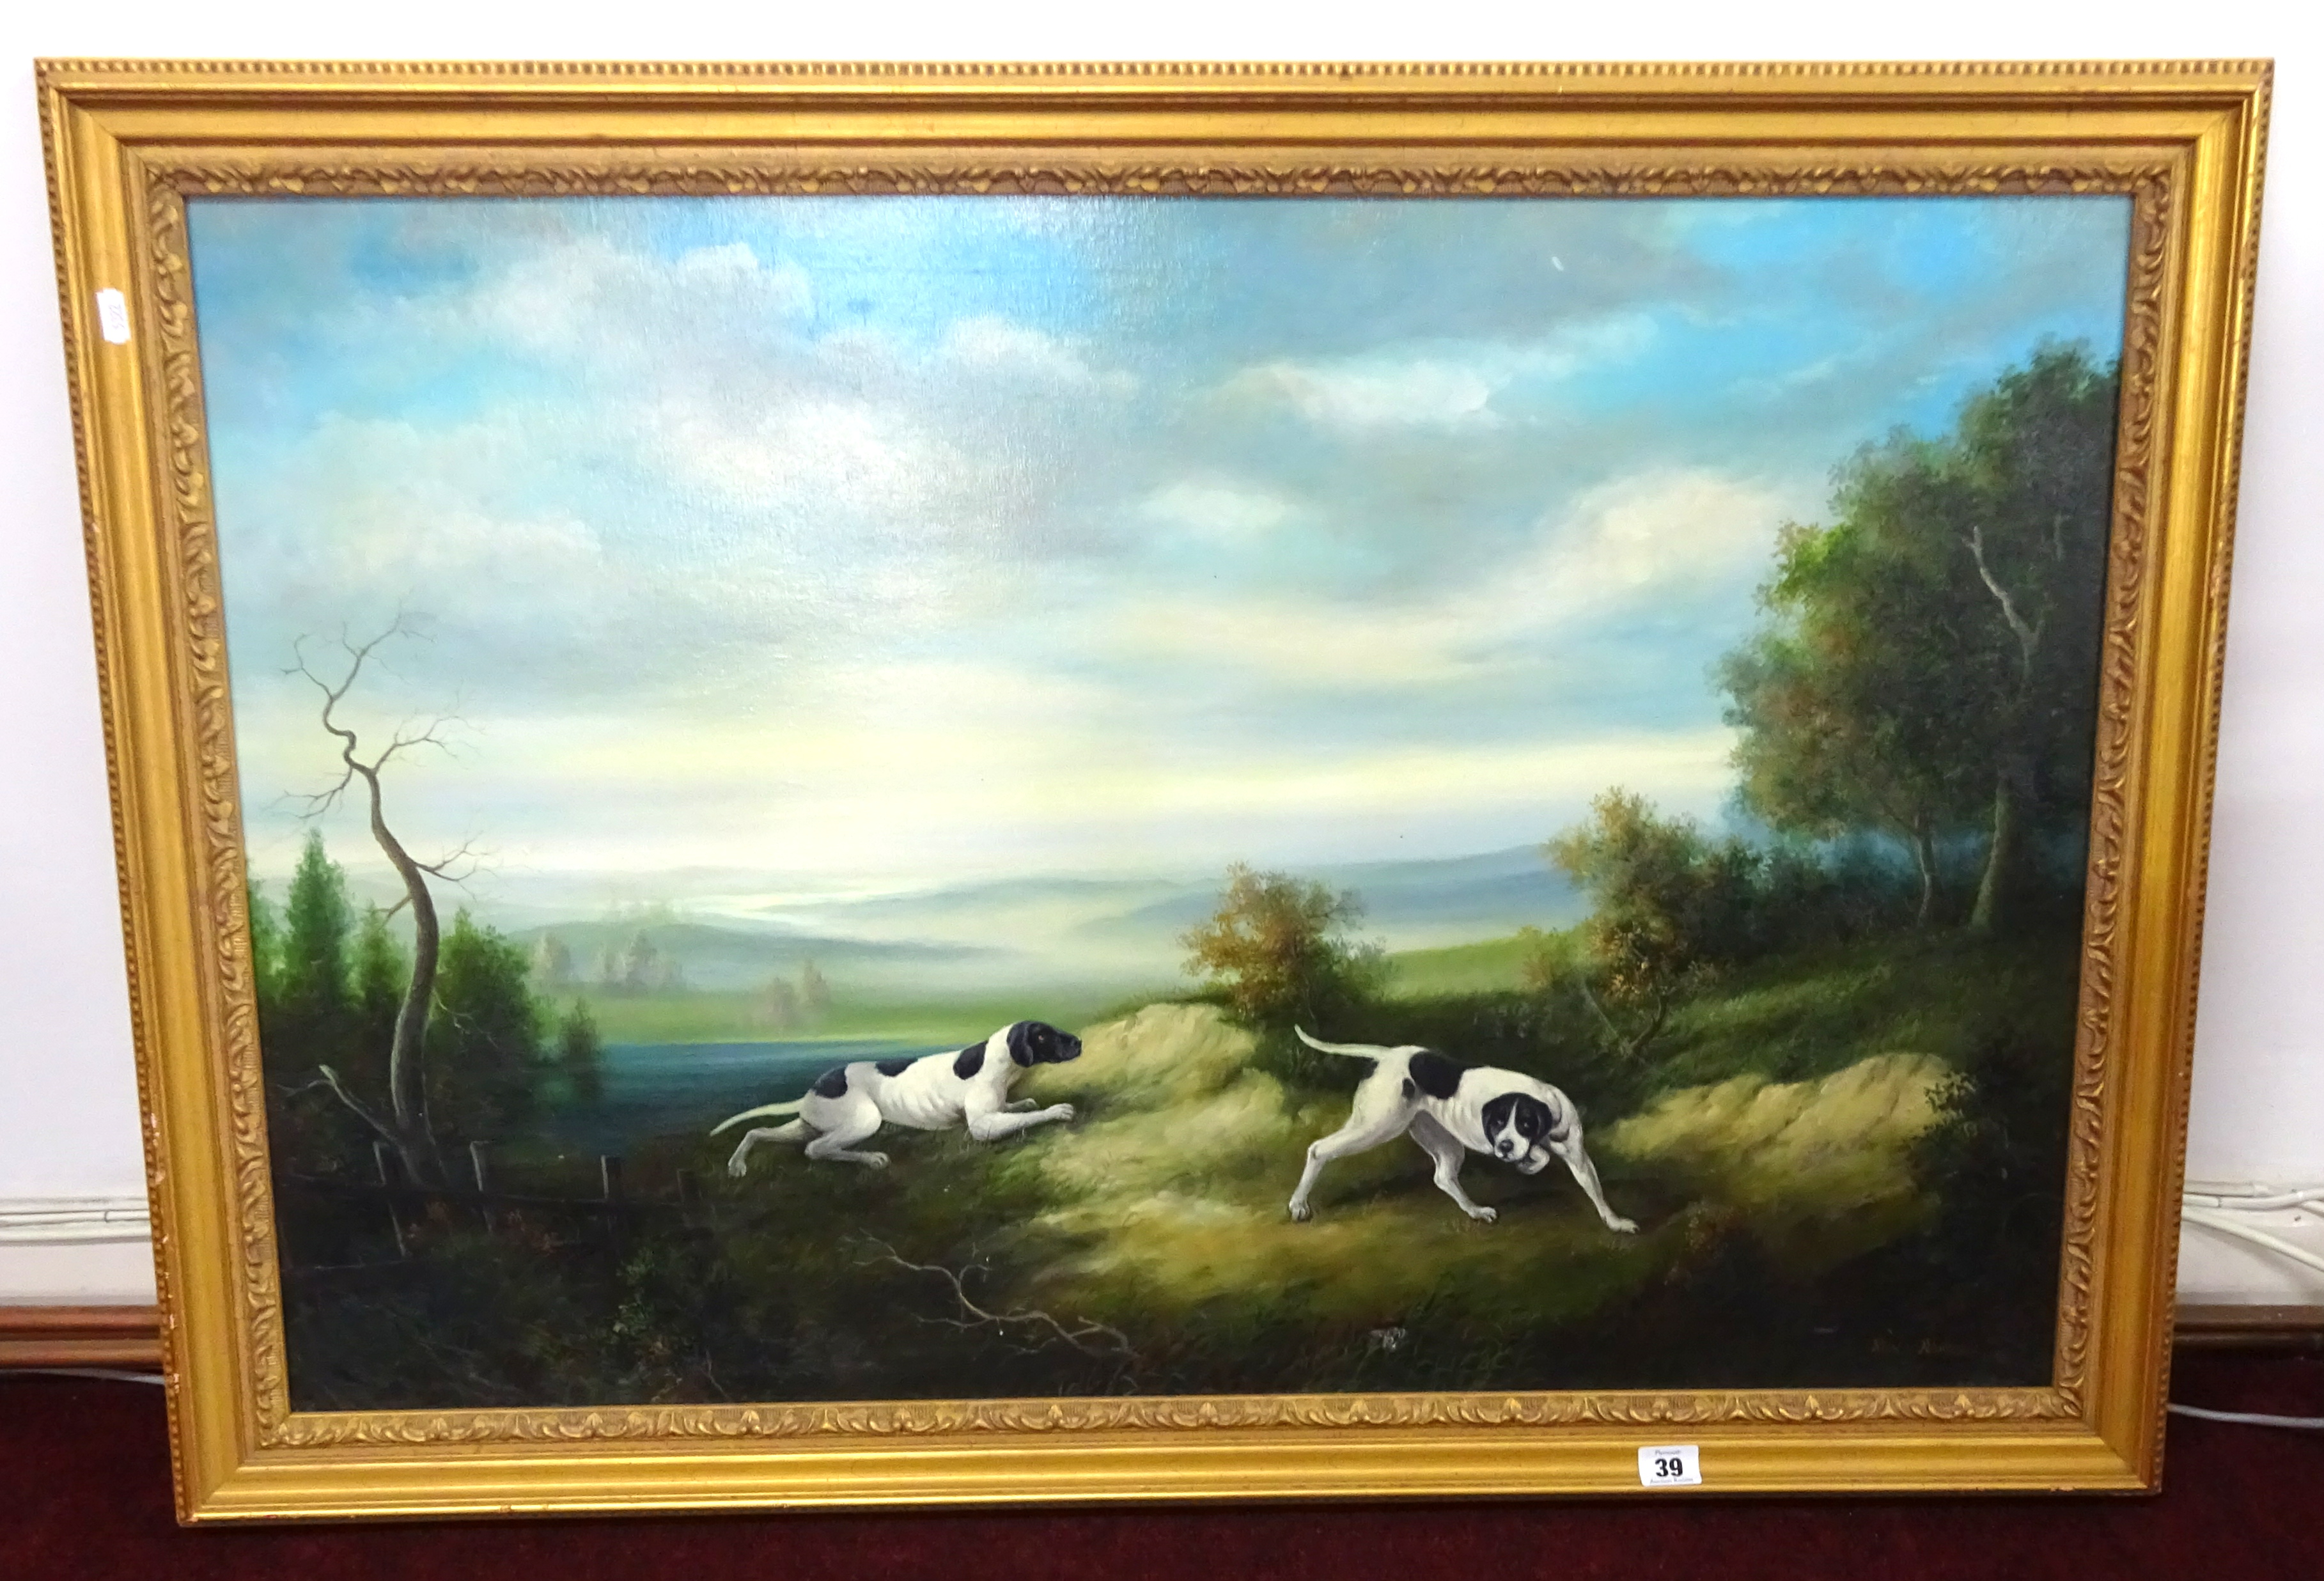 Lot 039 - Ron Harding, 20th century, 'Two gun dogs in a landscape', 59cm x 90cm, framed.